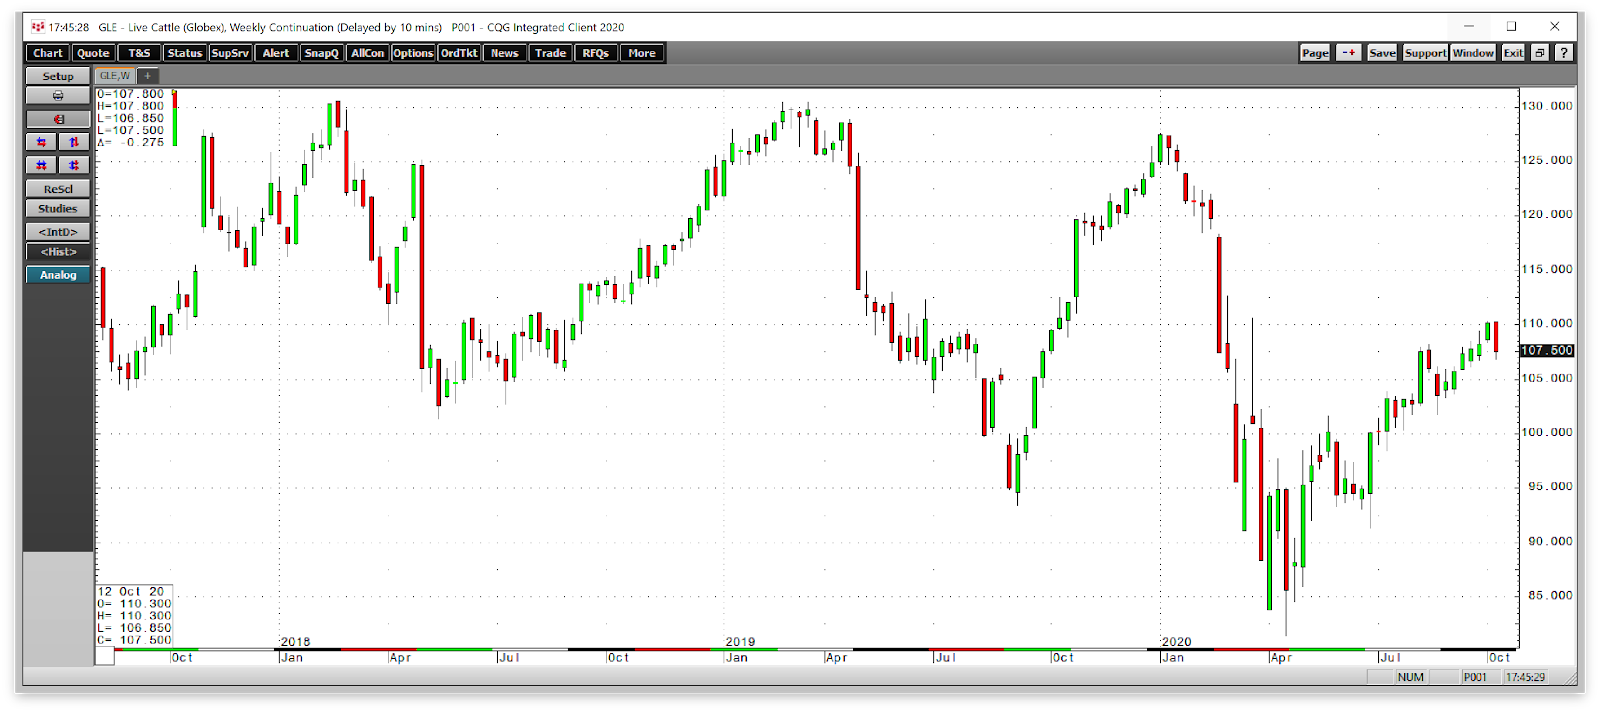 Cattle Futures Weekly Chart